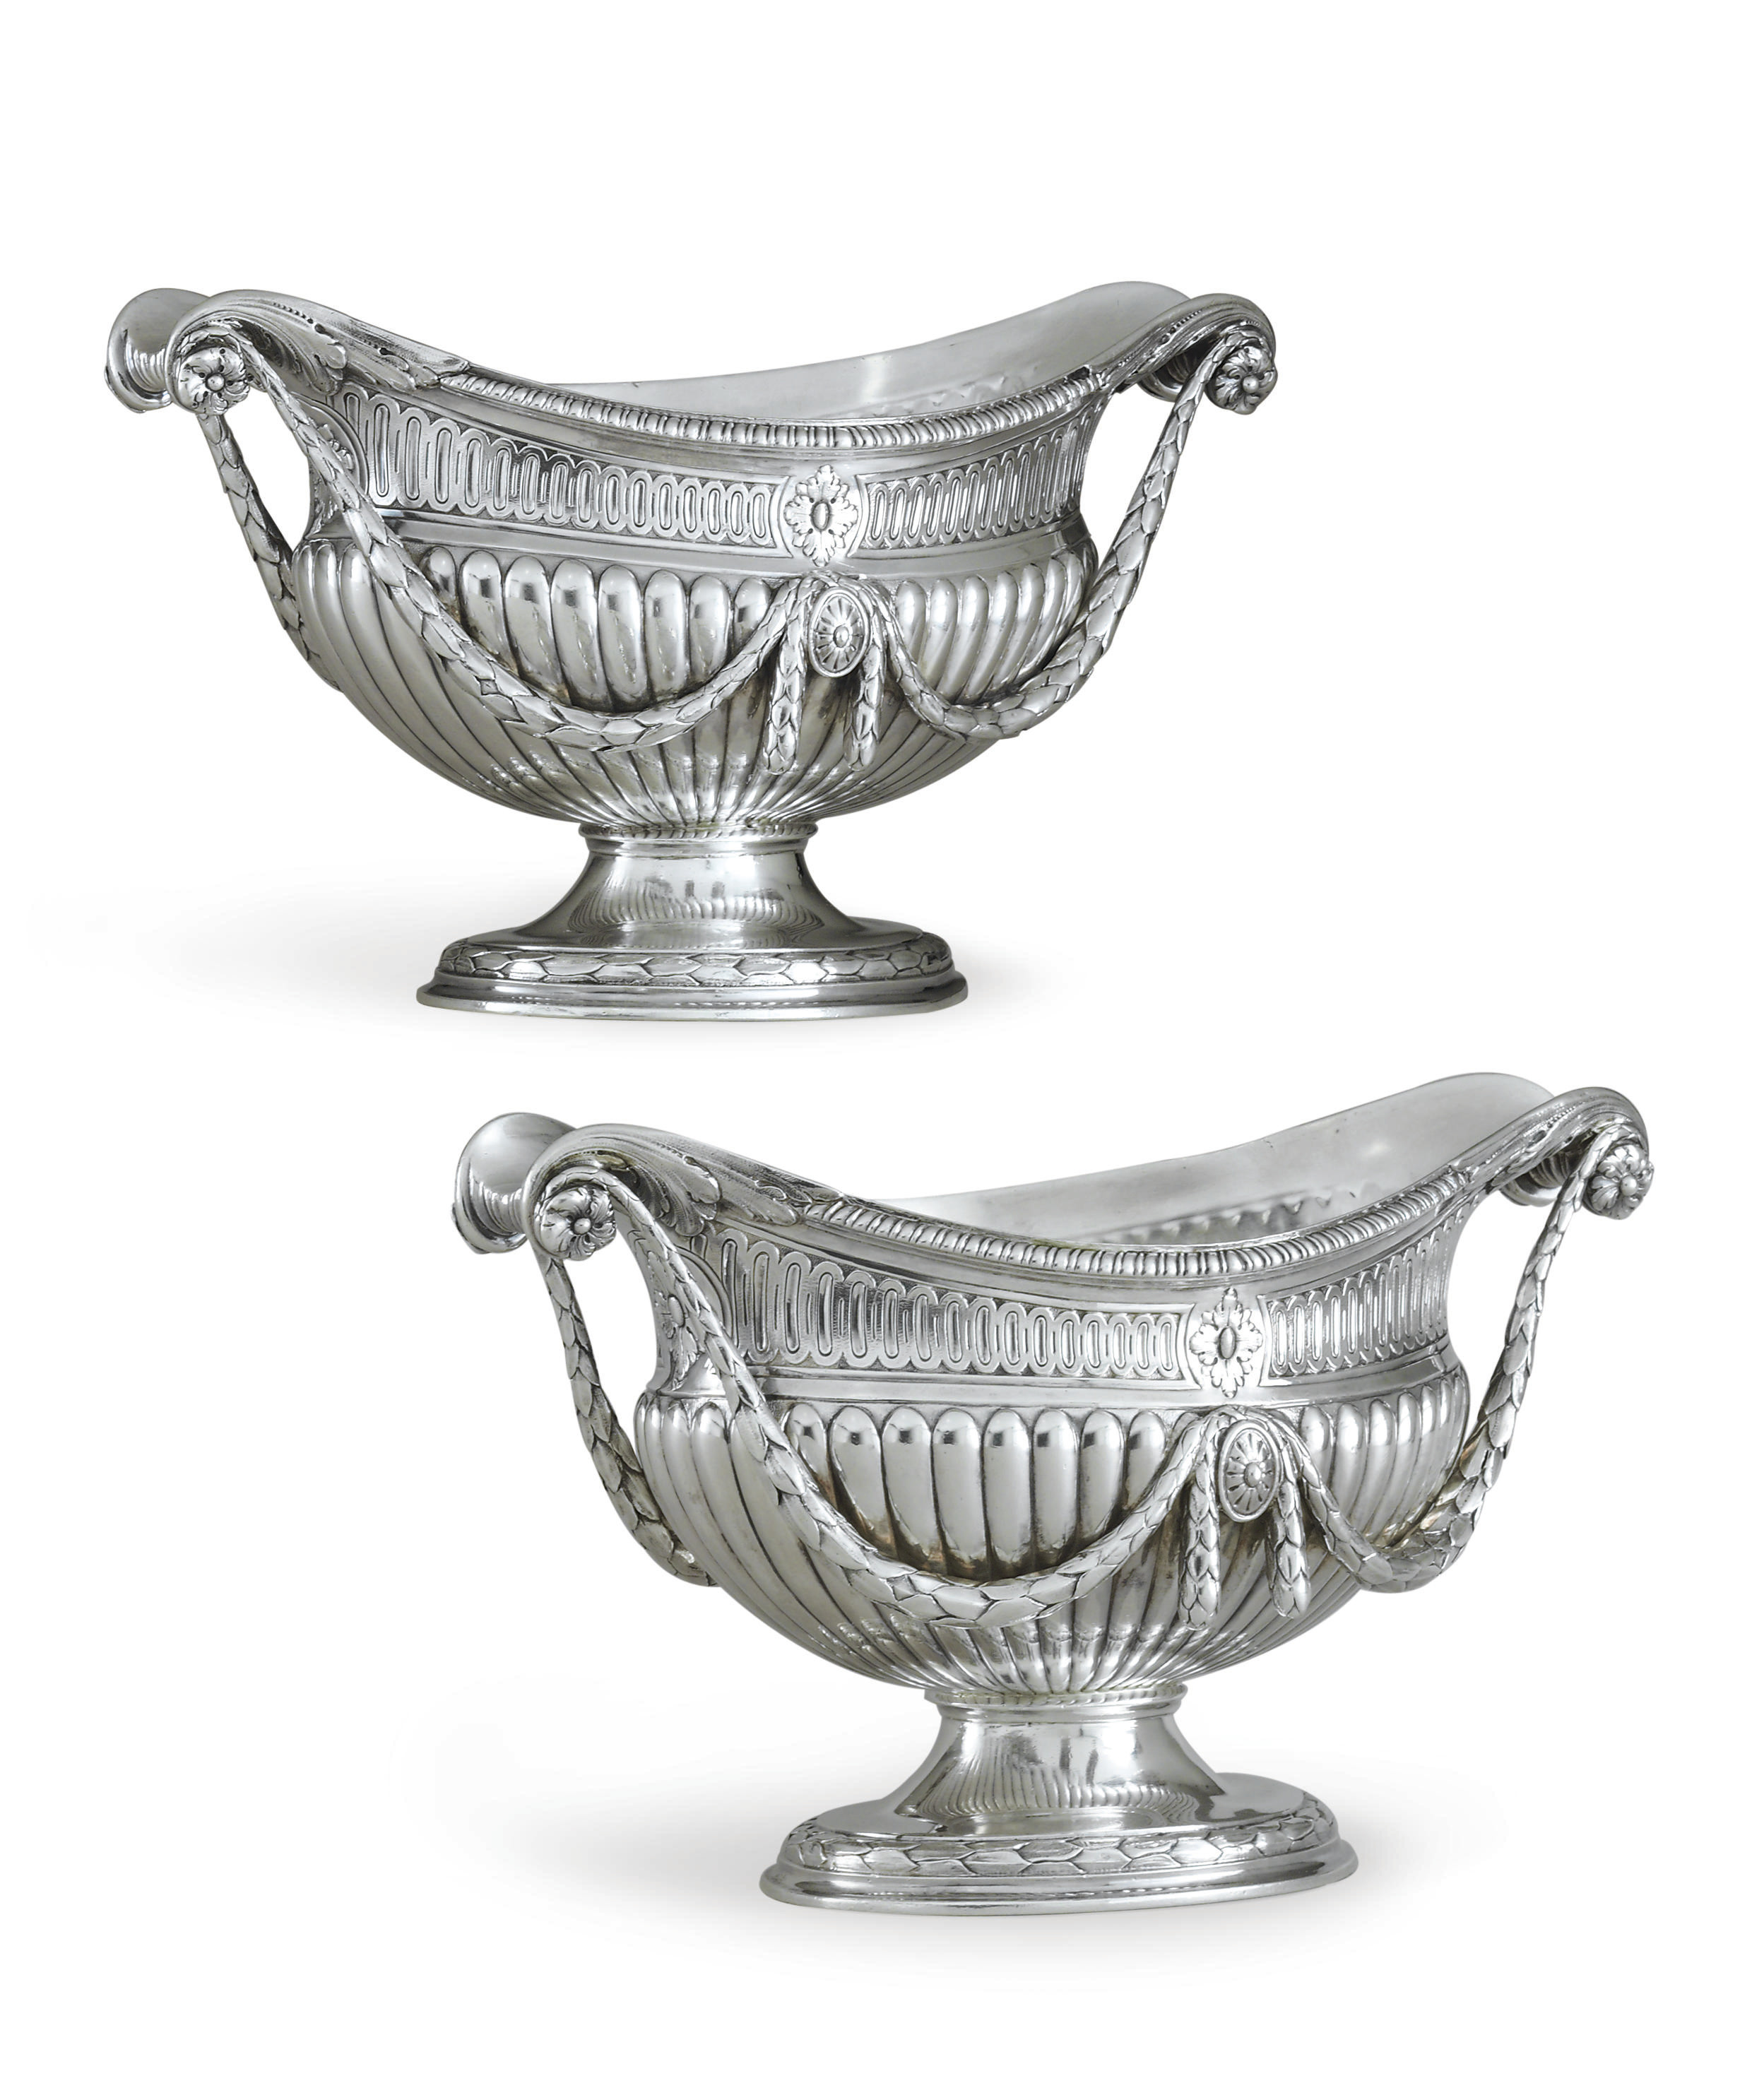 AN IMPORTANT PAIR OF GEORGE III SILVER SAUCEBOATS